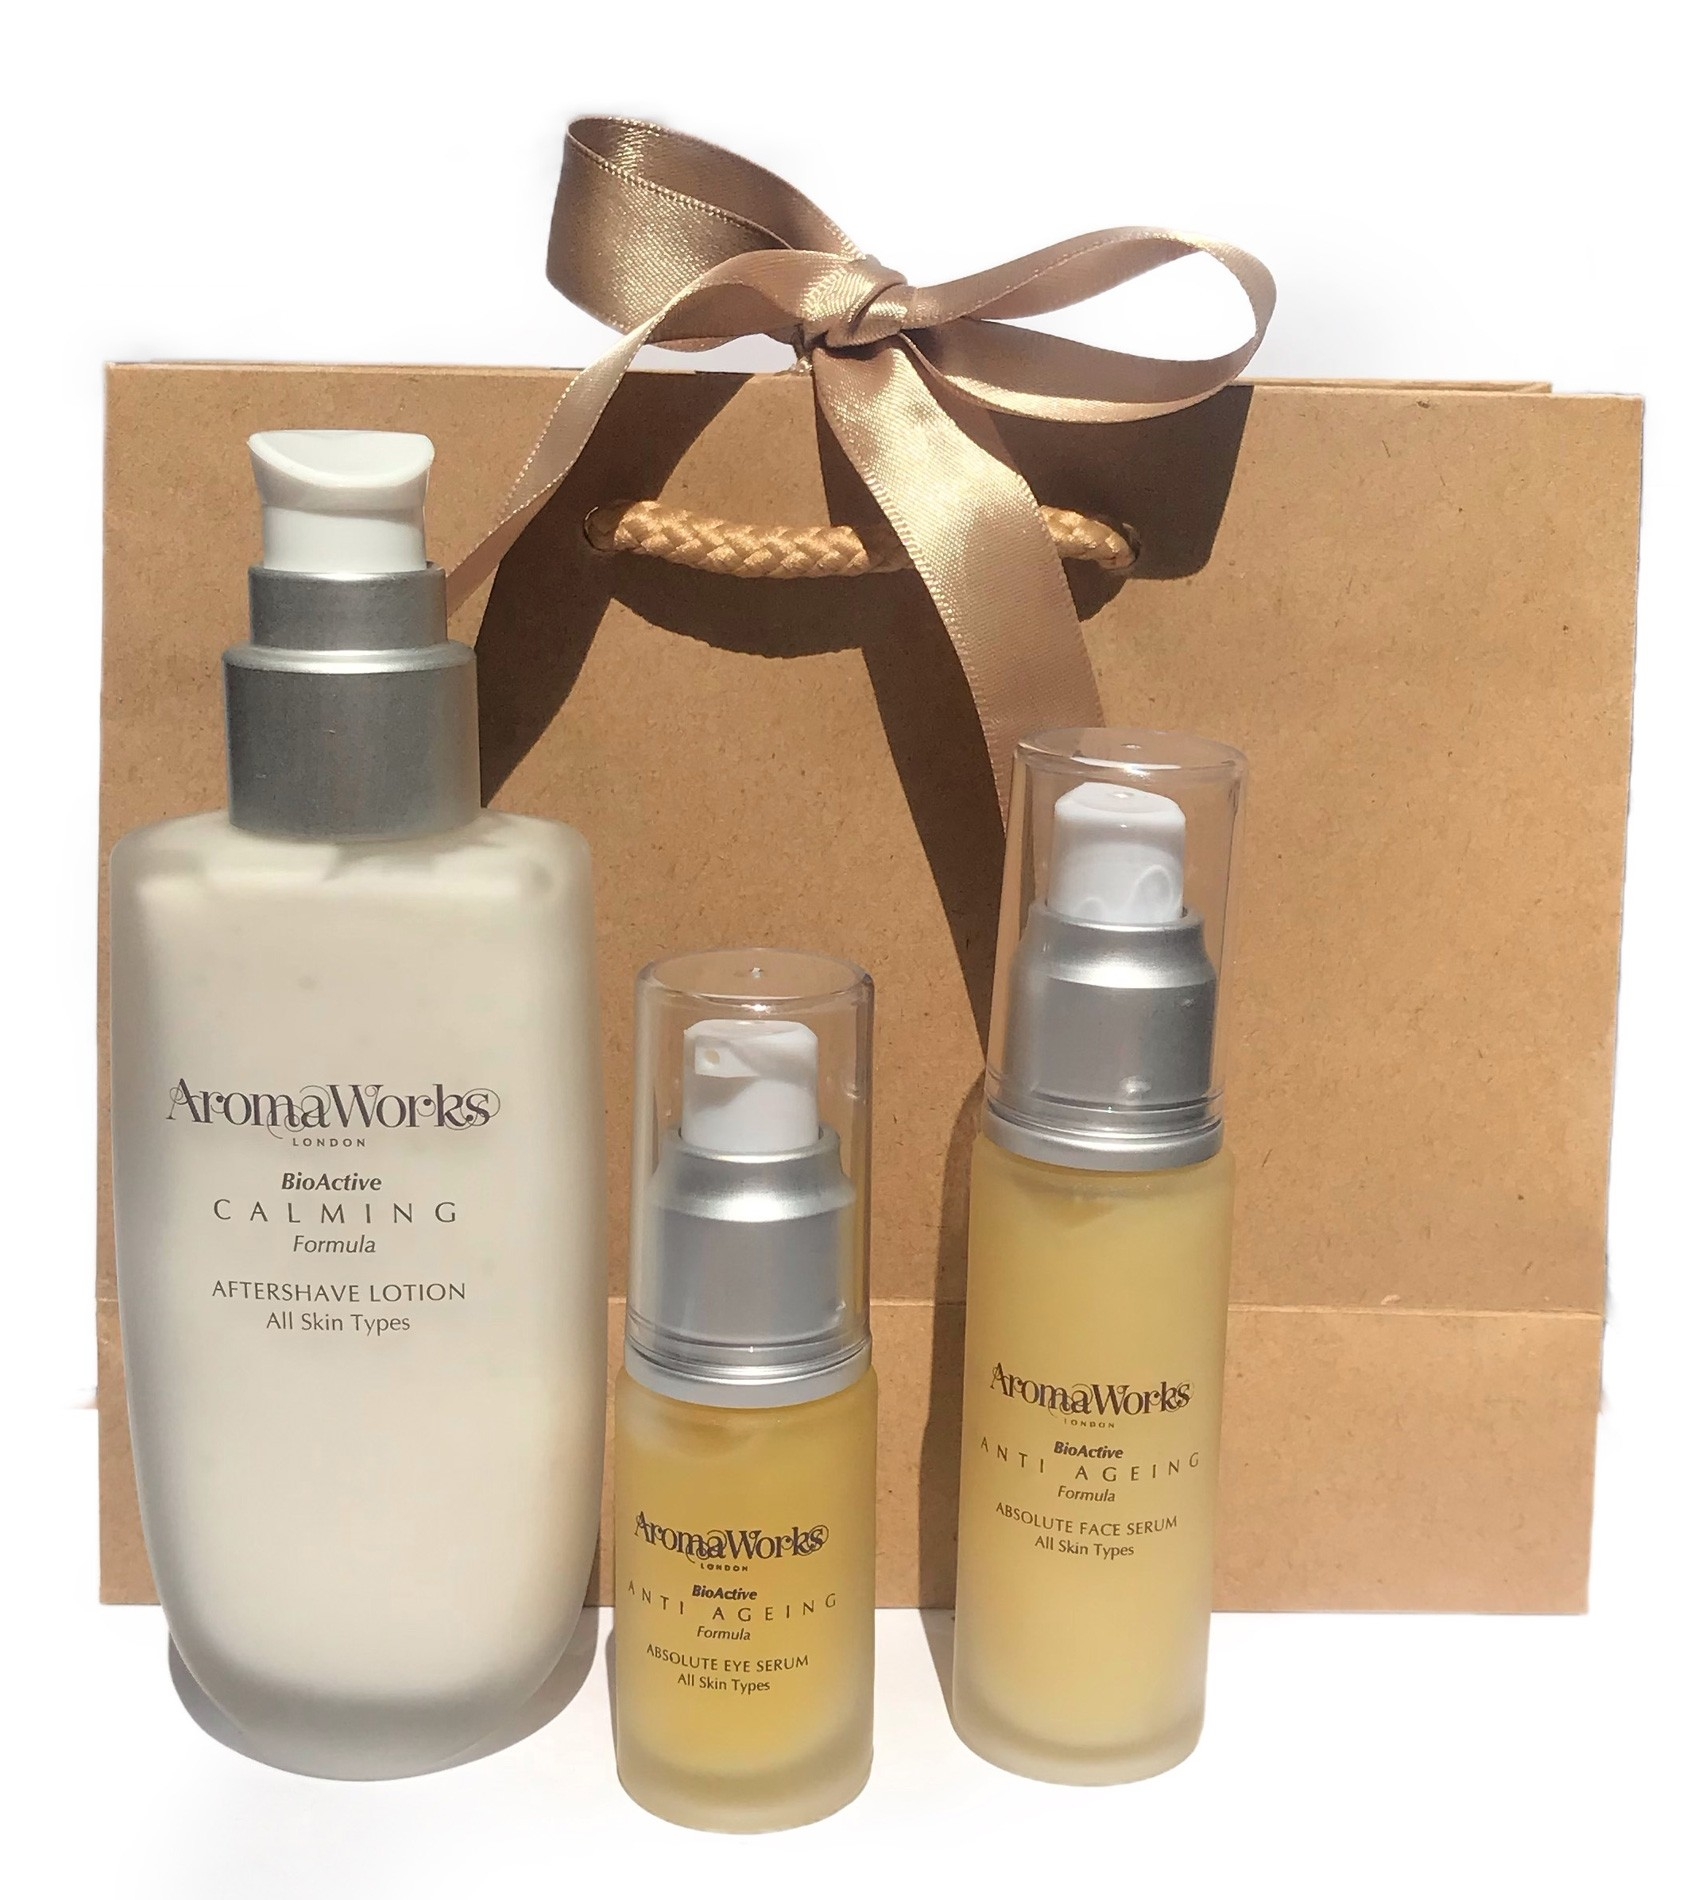 AromaWorks Mens Skin Care Gift Set